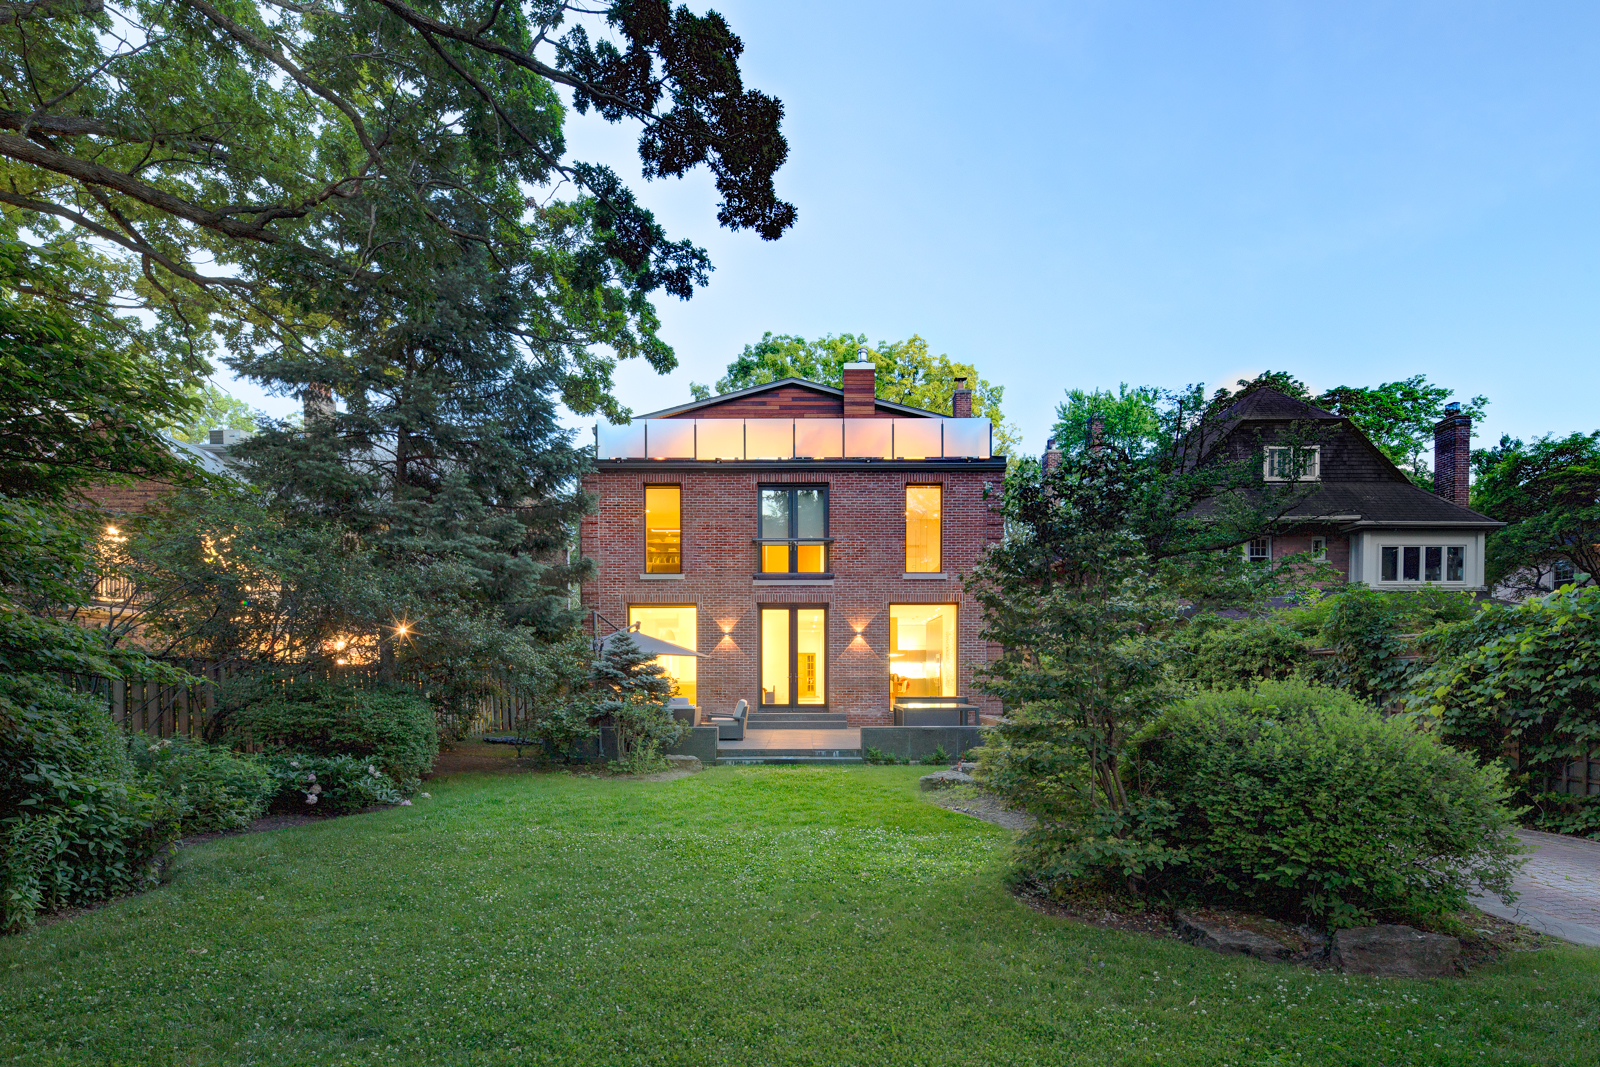 example of exterior shot photographed during ideal weather conditions. private residence by altius inc, toronto.